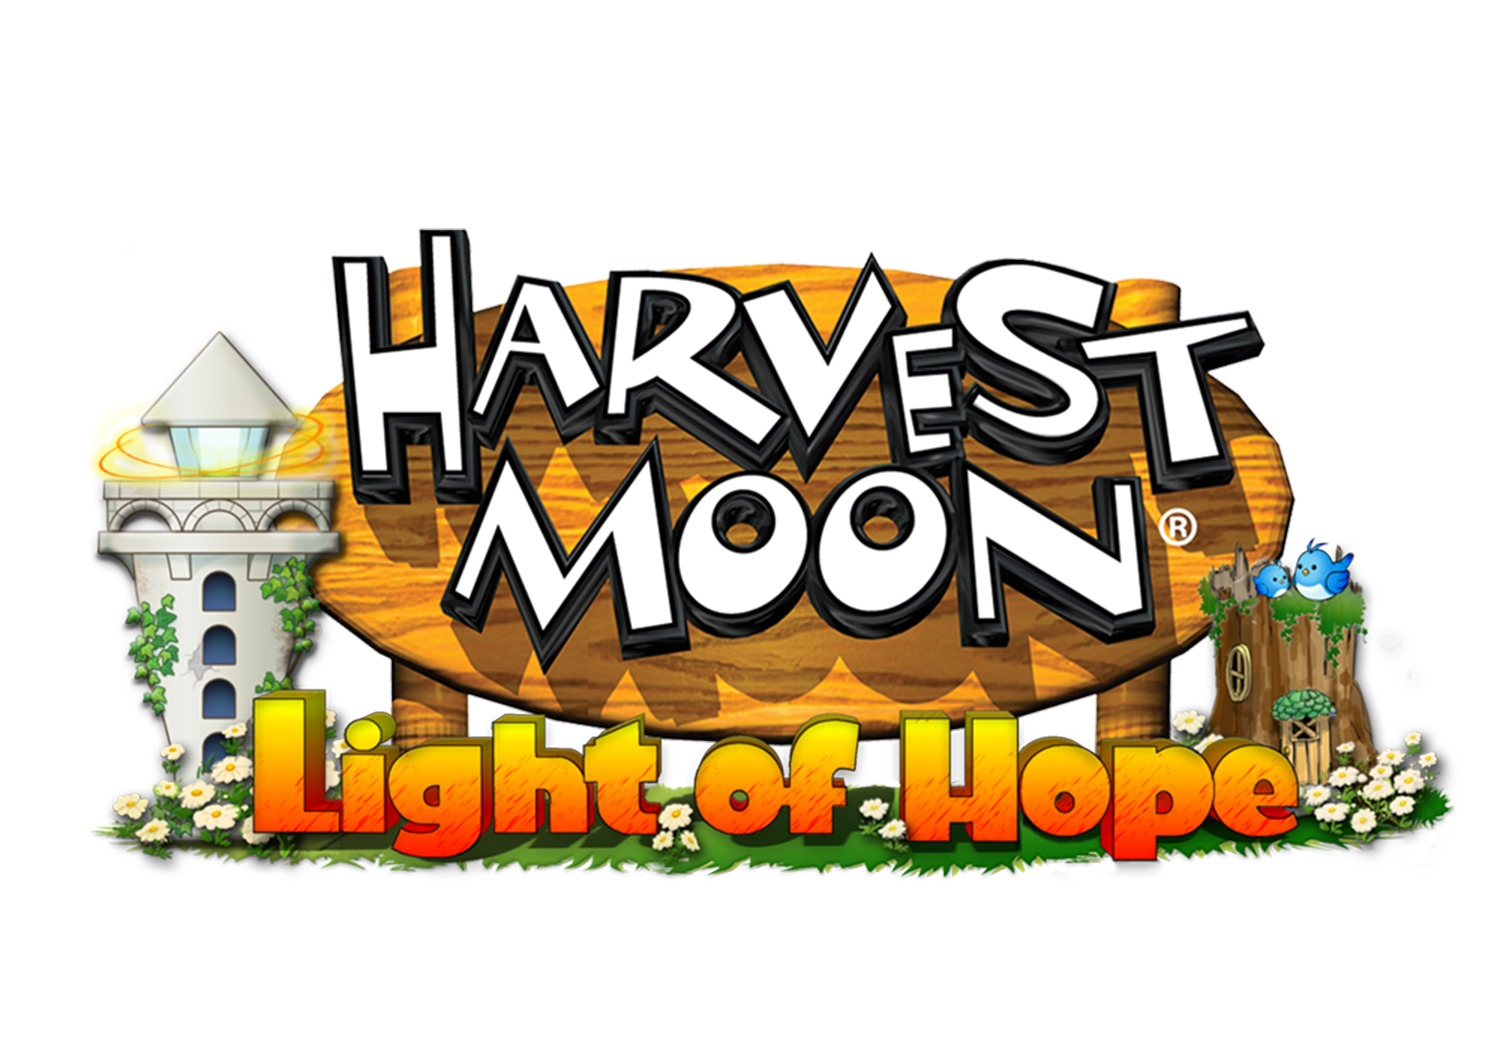 Harvest Moon clipart fall scene Forward Hands Hands Hope Light